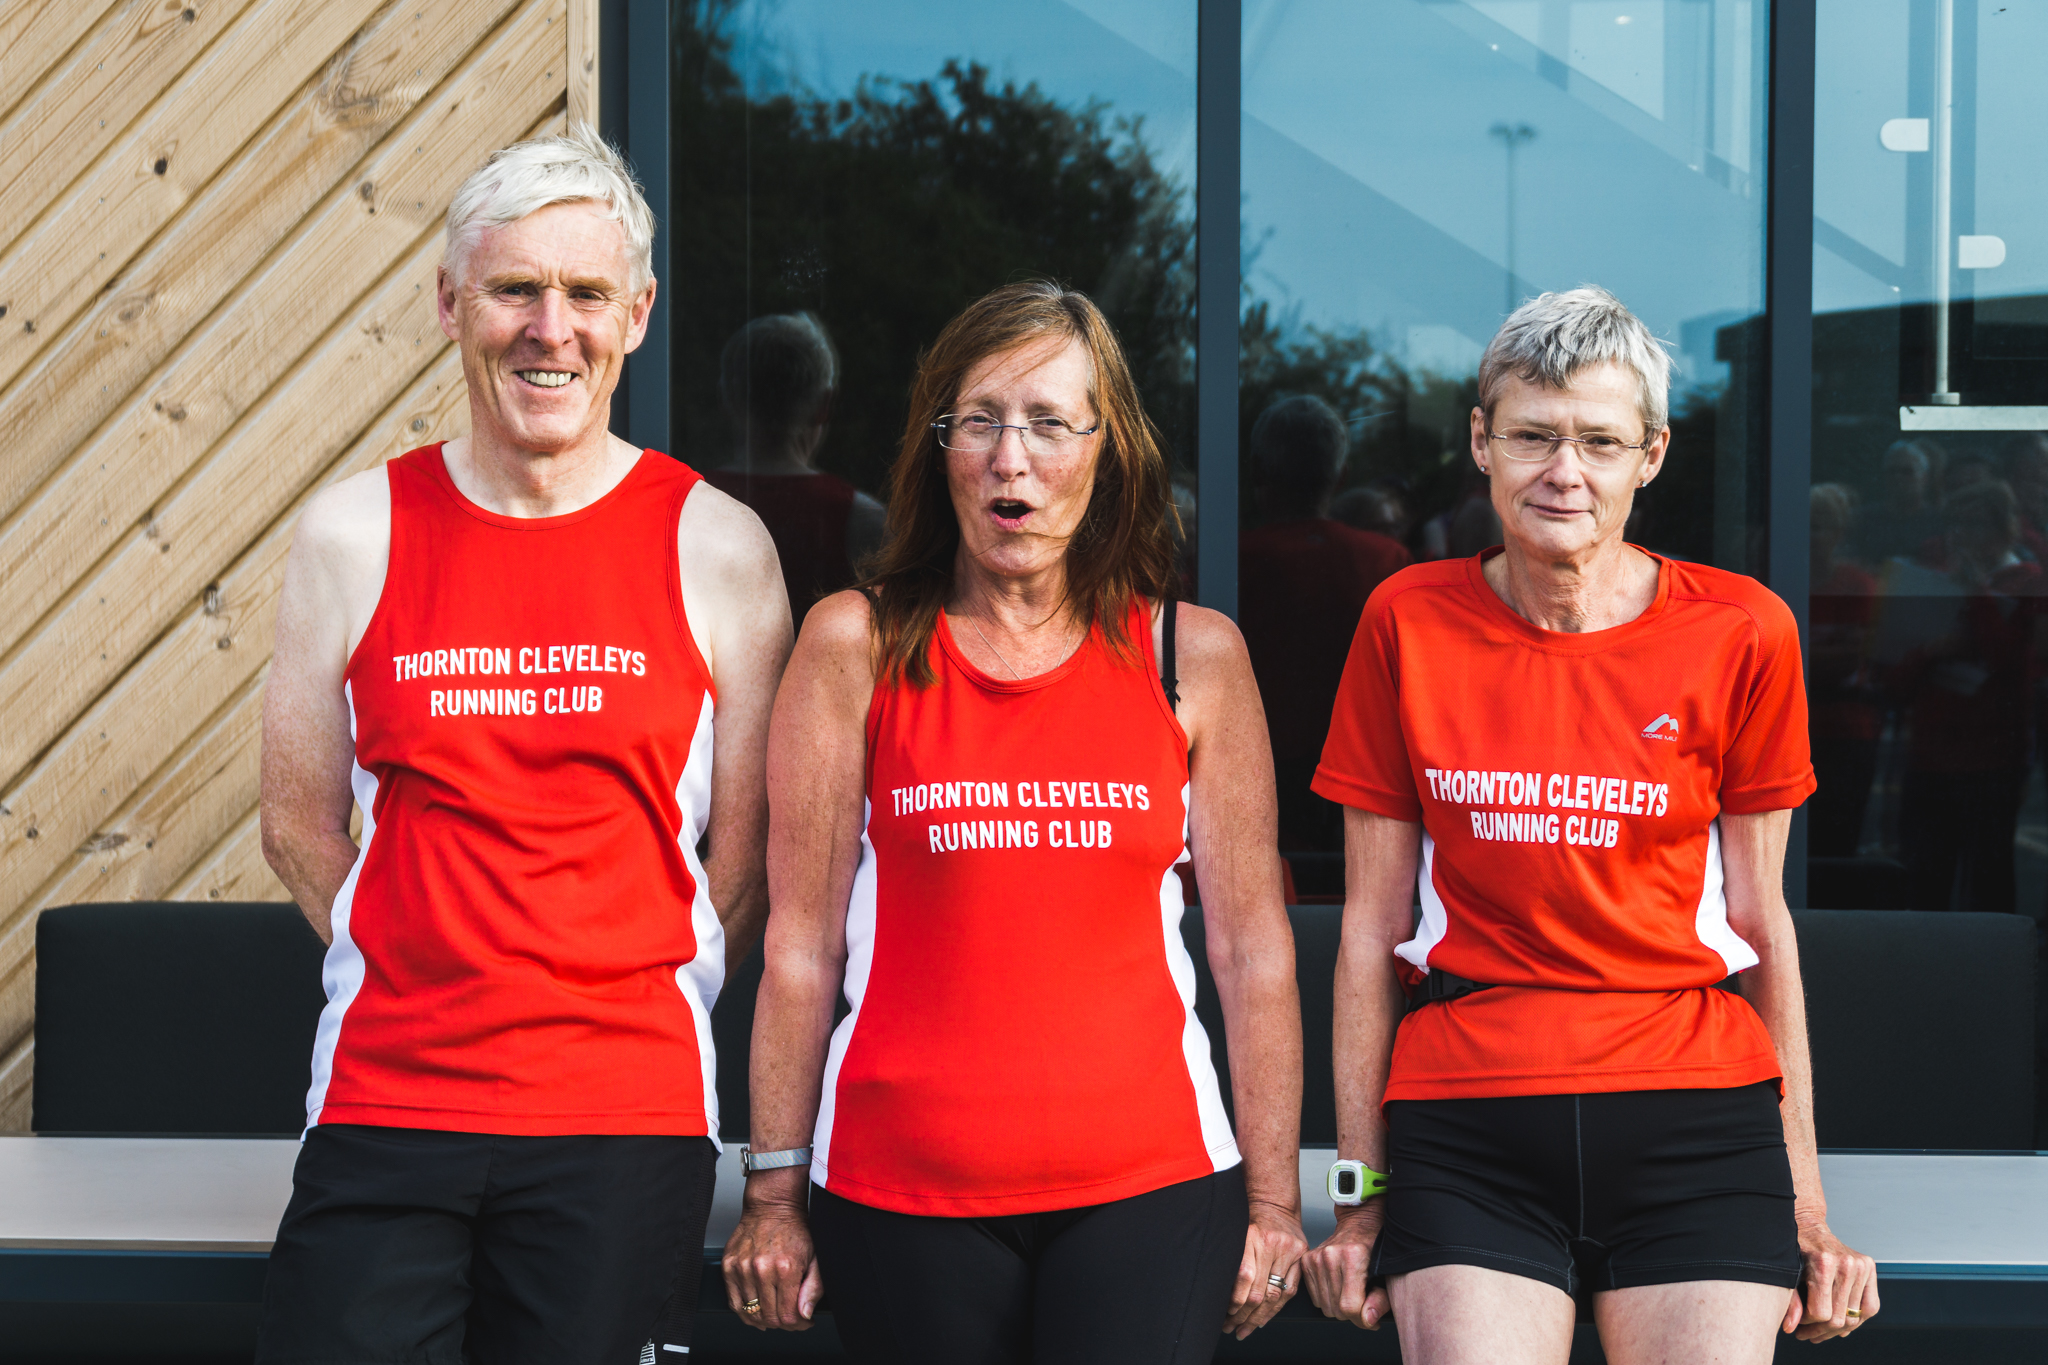 16-06-07 Team photo for Cleveleys and Thornton running club-59.jpg